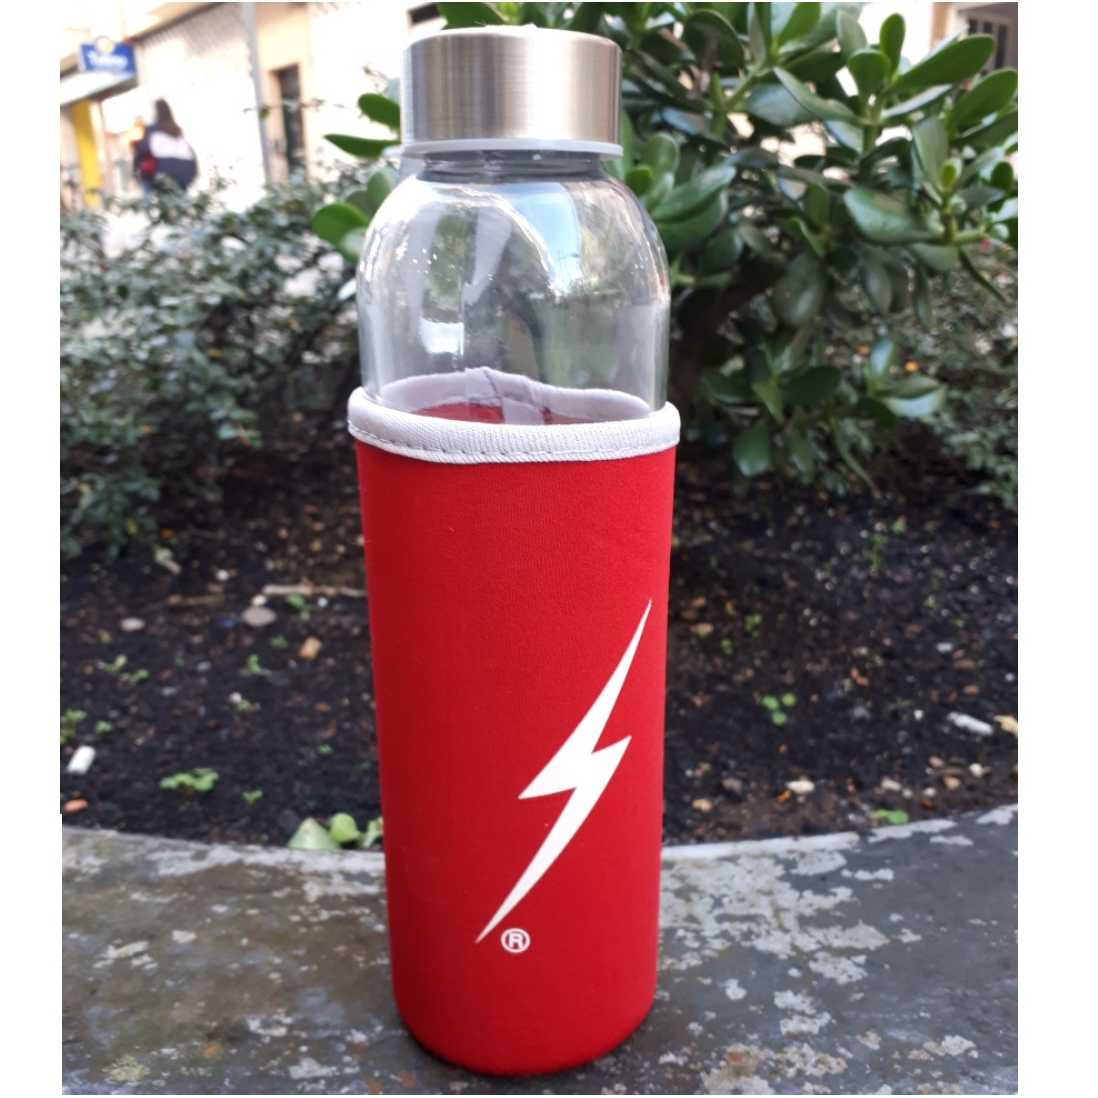 BOTELLA LIGHTNING BOLT ROJA